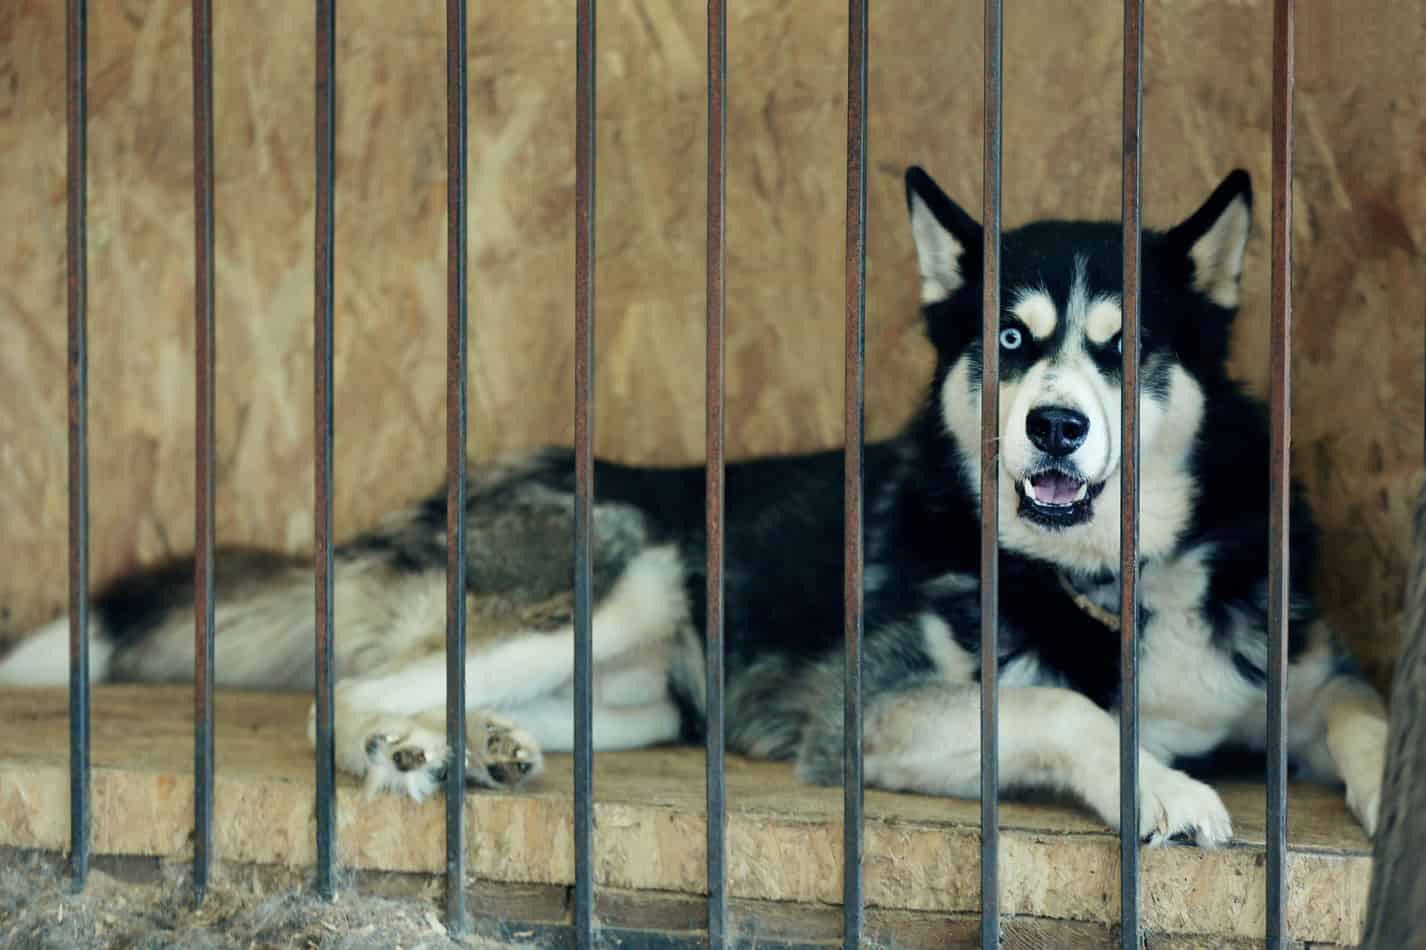 Husky Rescue Guide: How to find one, and what it will be like